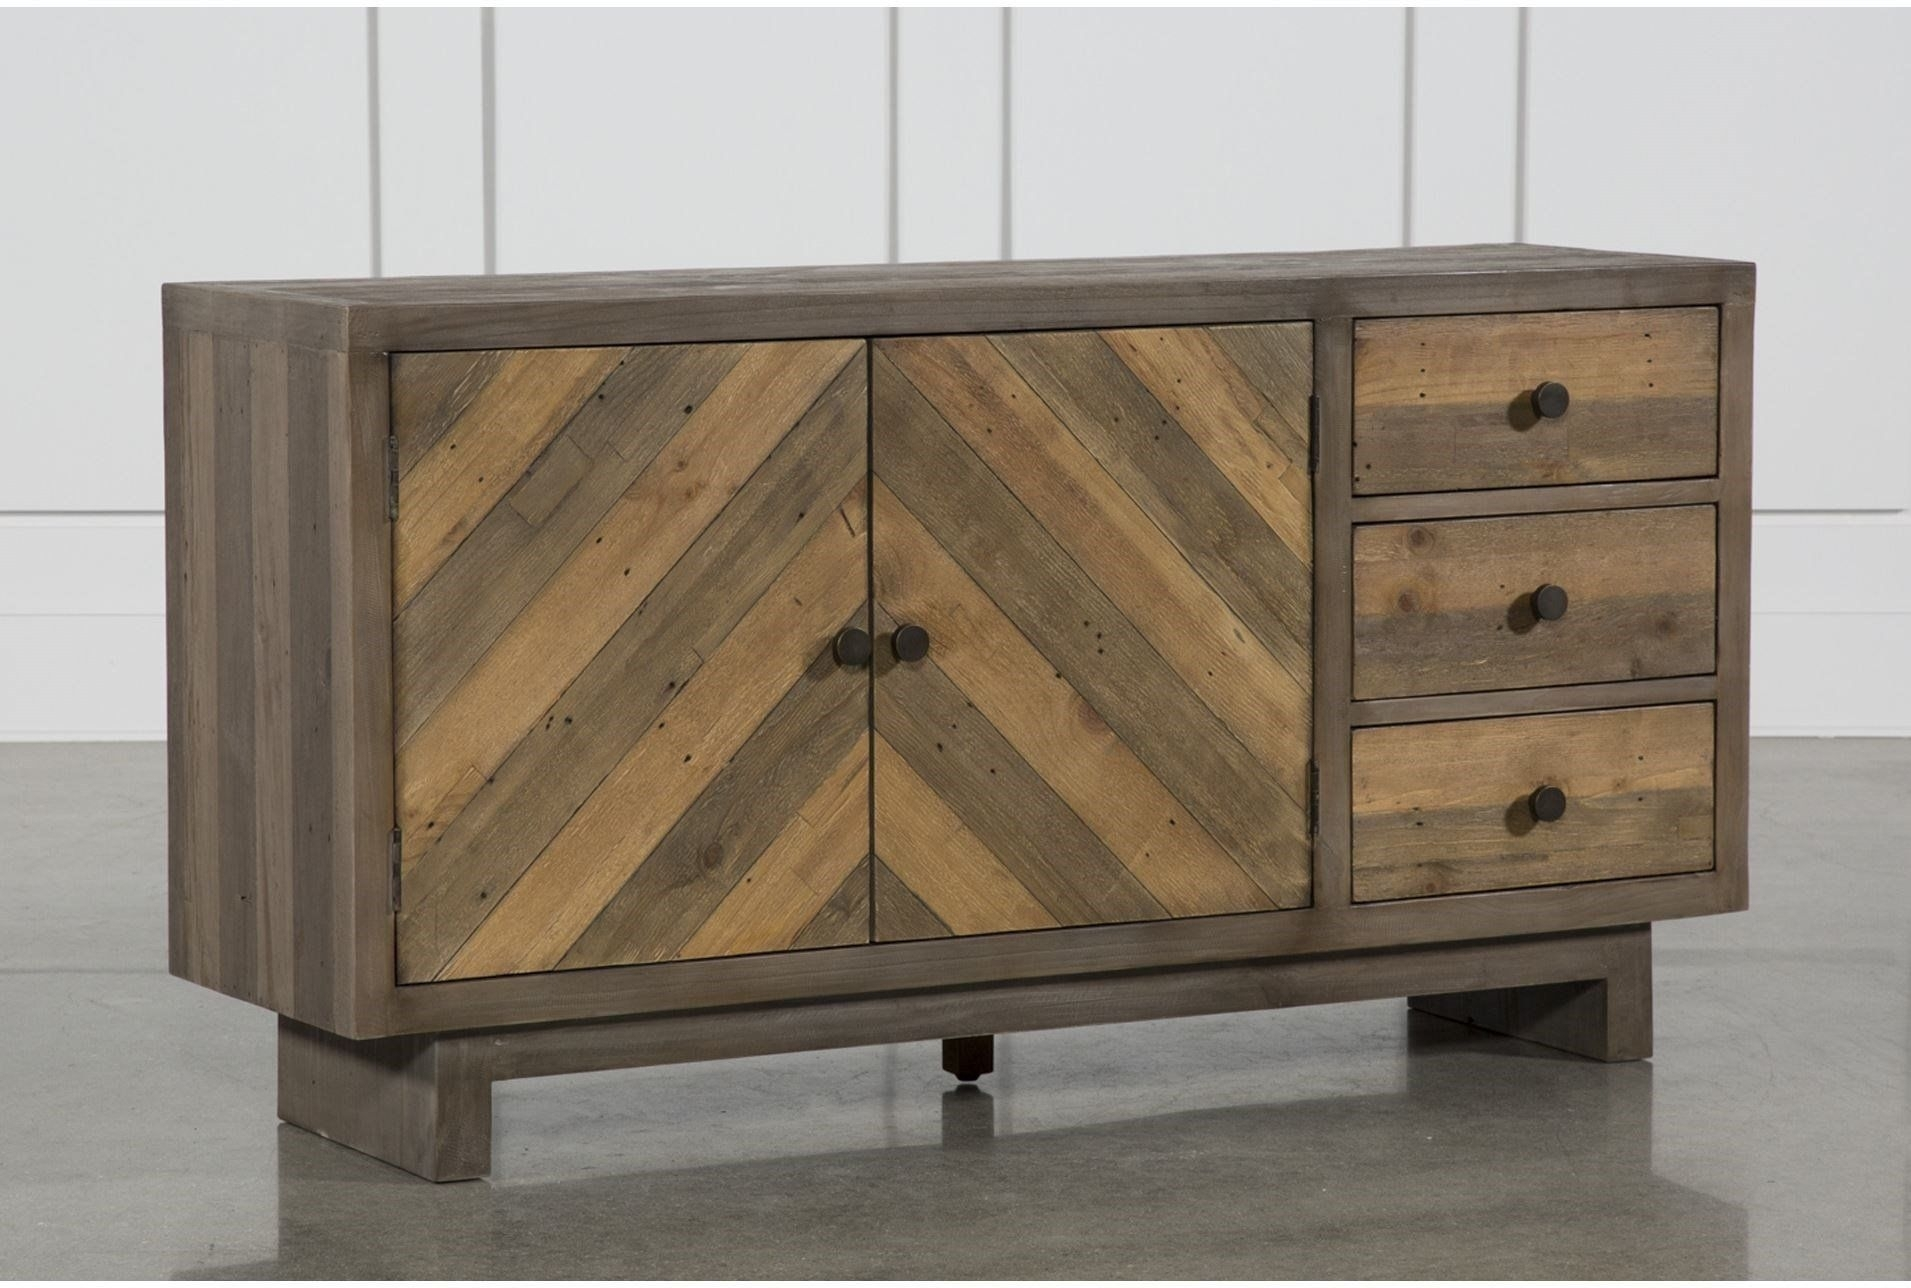 Aged Pine 3-Drawer/2-Door Sideboard | Christiansen | Pinterest intended for Aged Mirrored 2 Door Sideboards (Image 1 of 30)